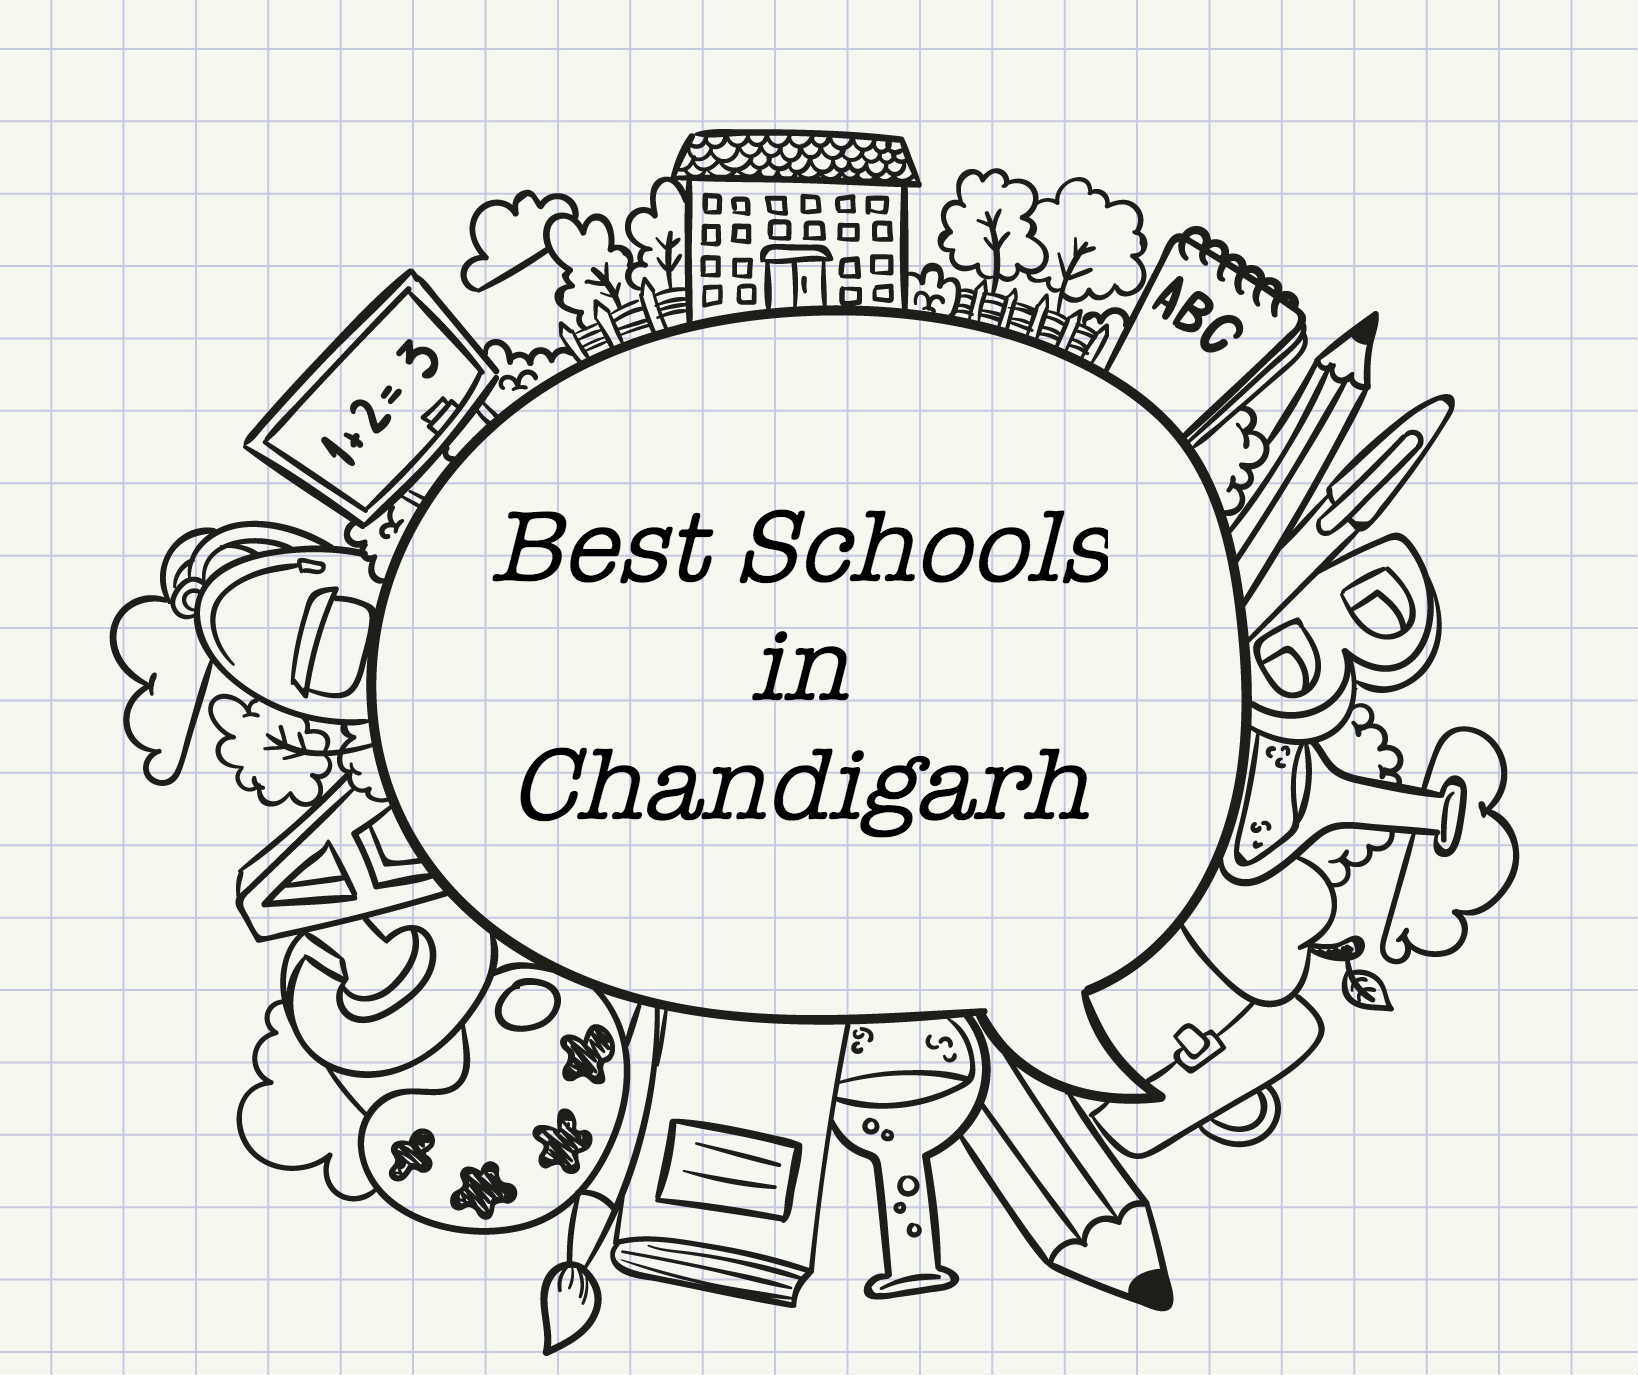 List of top 10 best schools in Chandigarh and it's nearby areas.